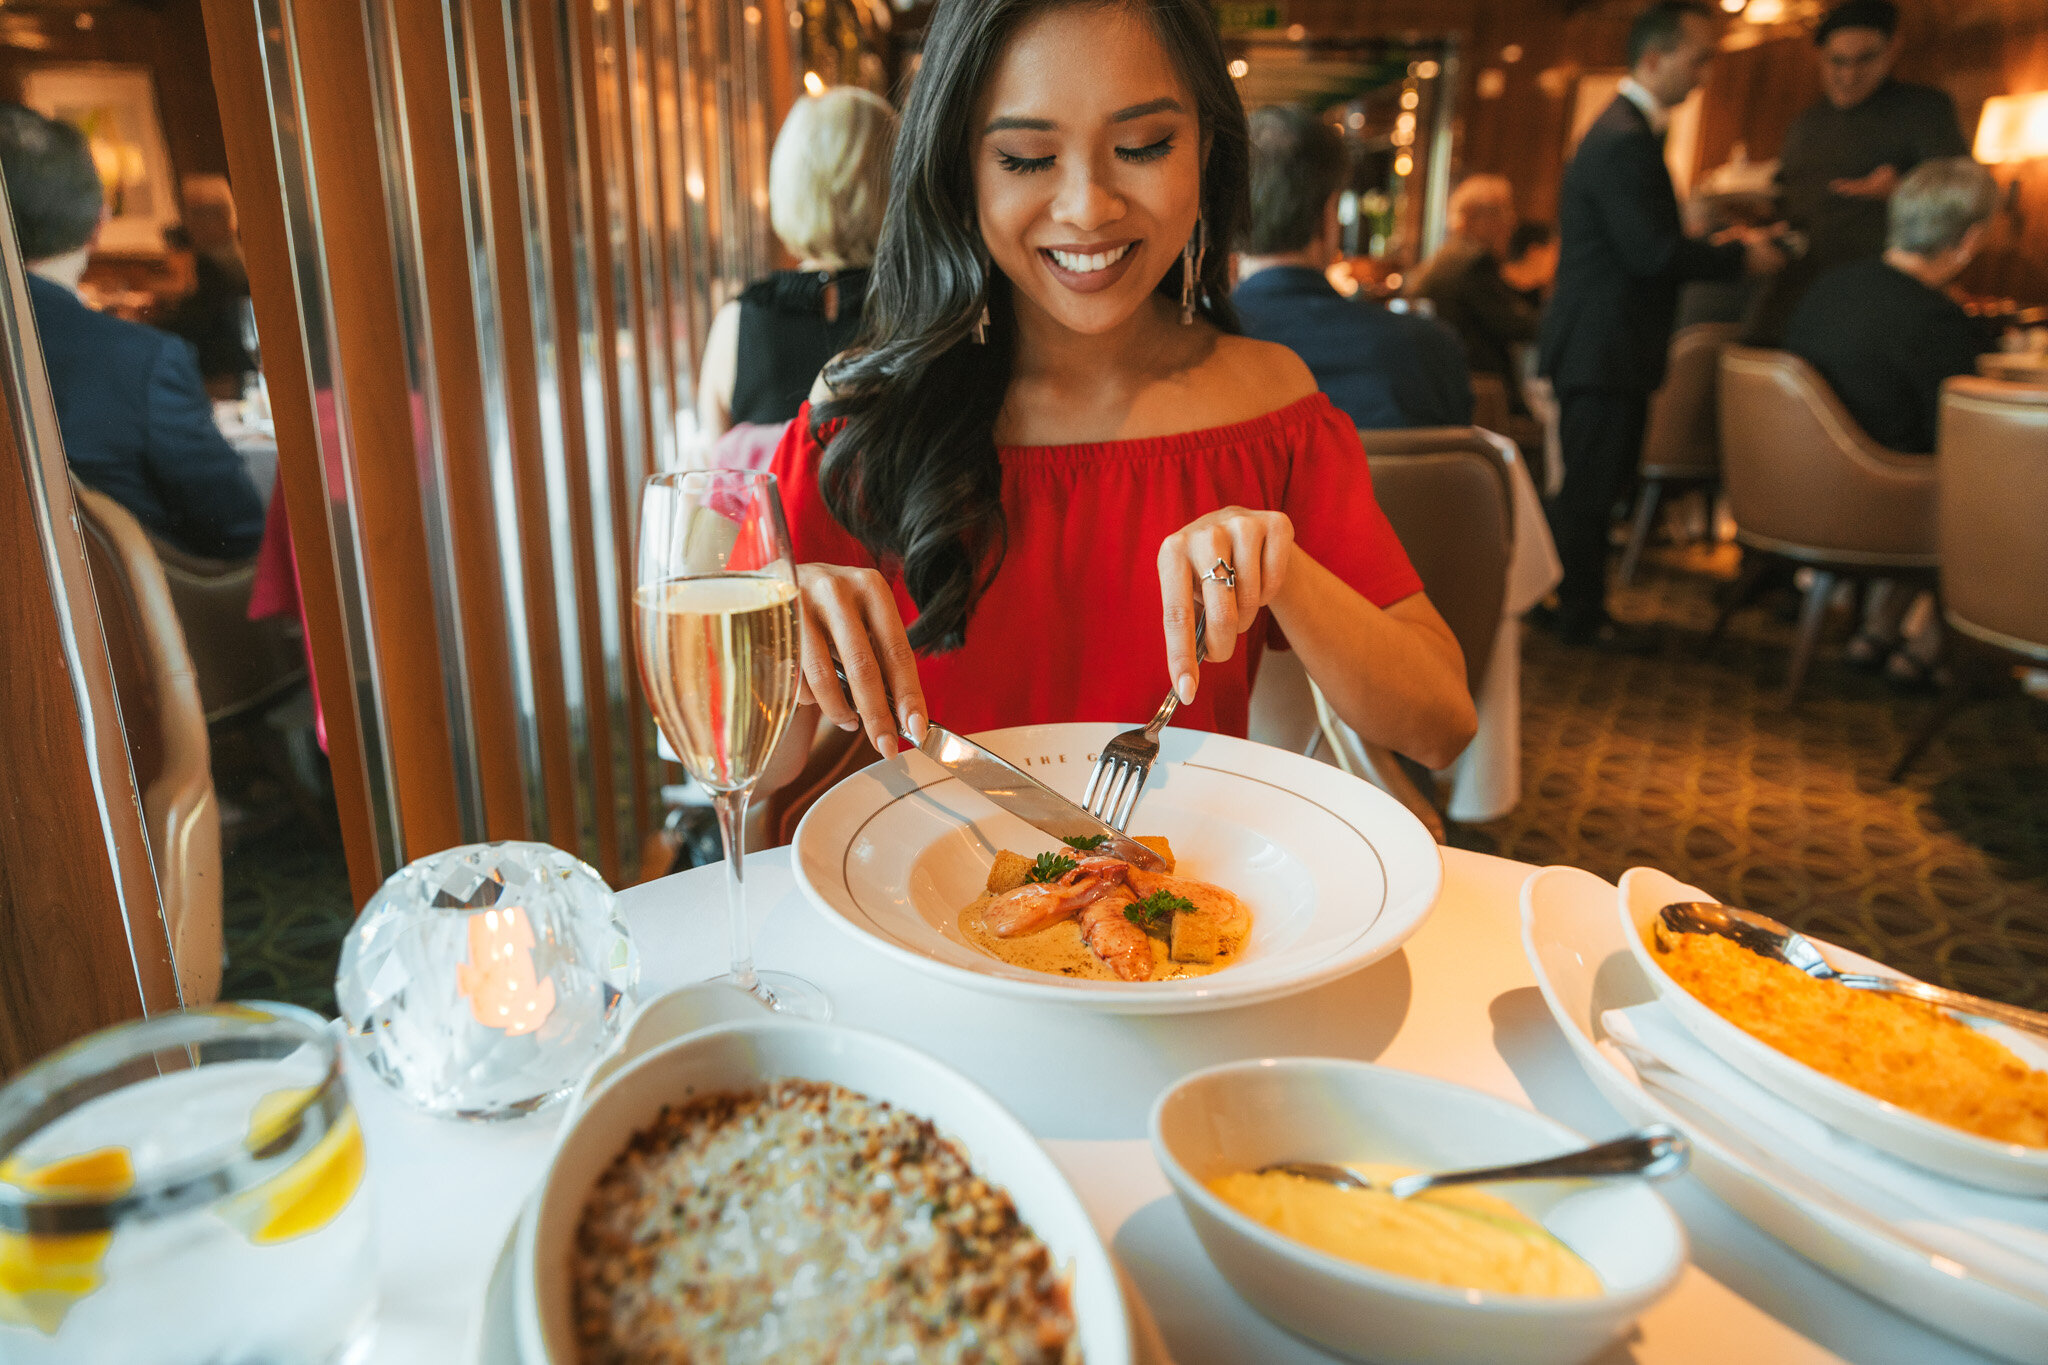 The Grill by Thomas Keller onboard the Seabourn Quest // Cruise Review: 11-Day New England & Canada on the Seabourn Quest // #readysetjetset #canada #cruise #luxury #travel #cruising